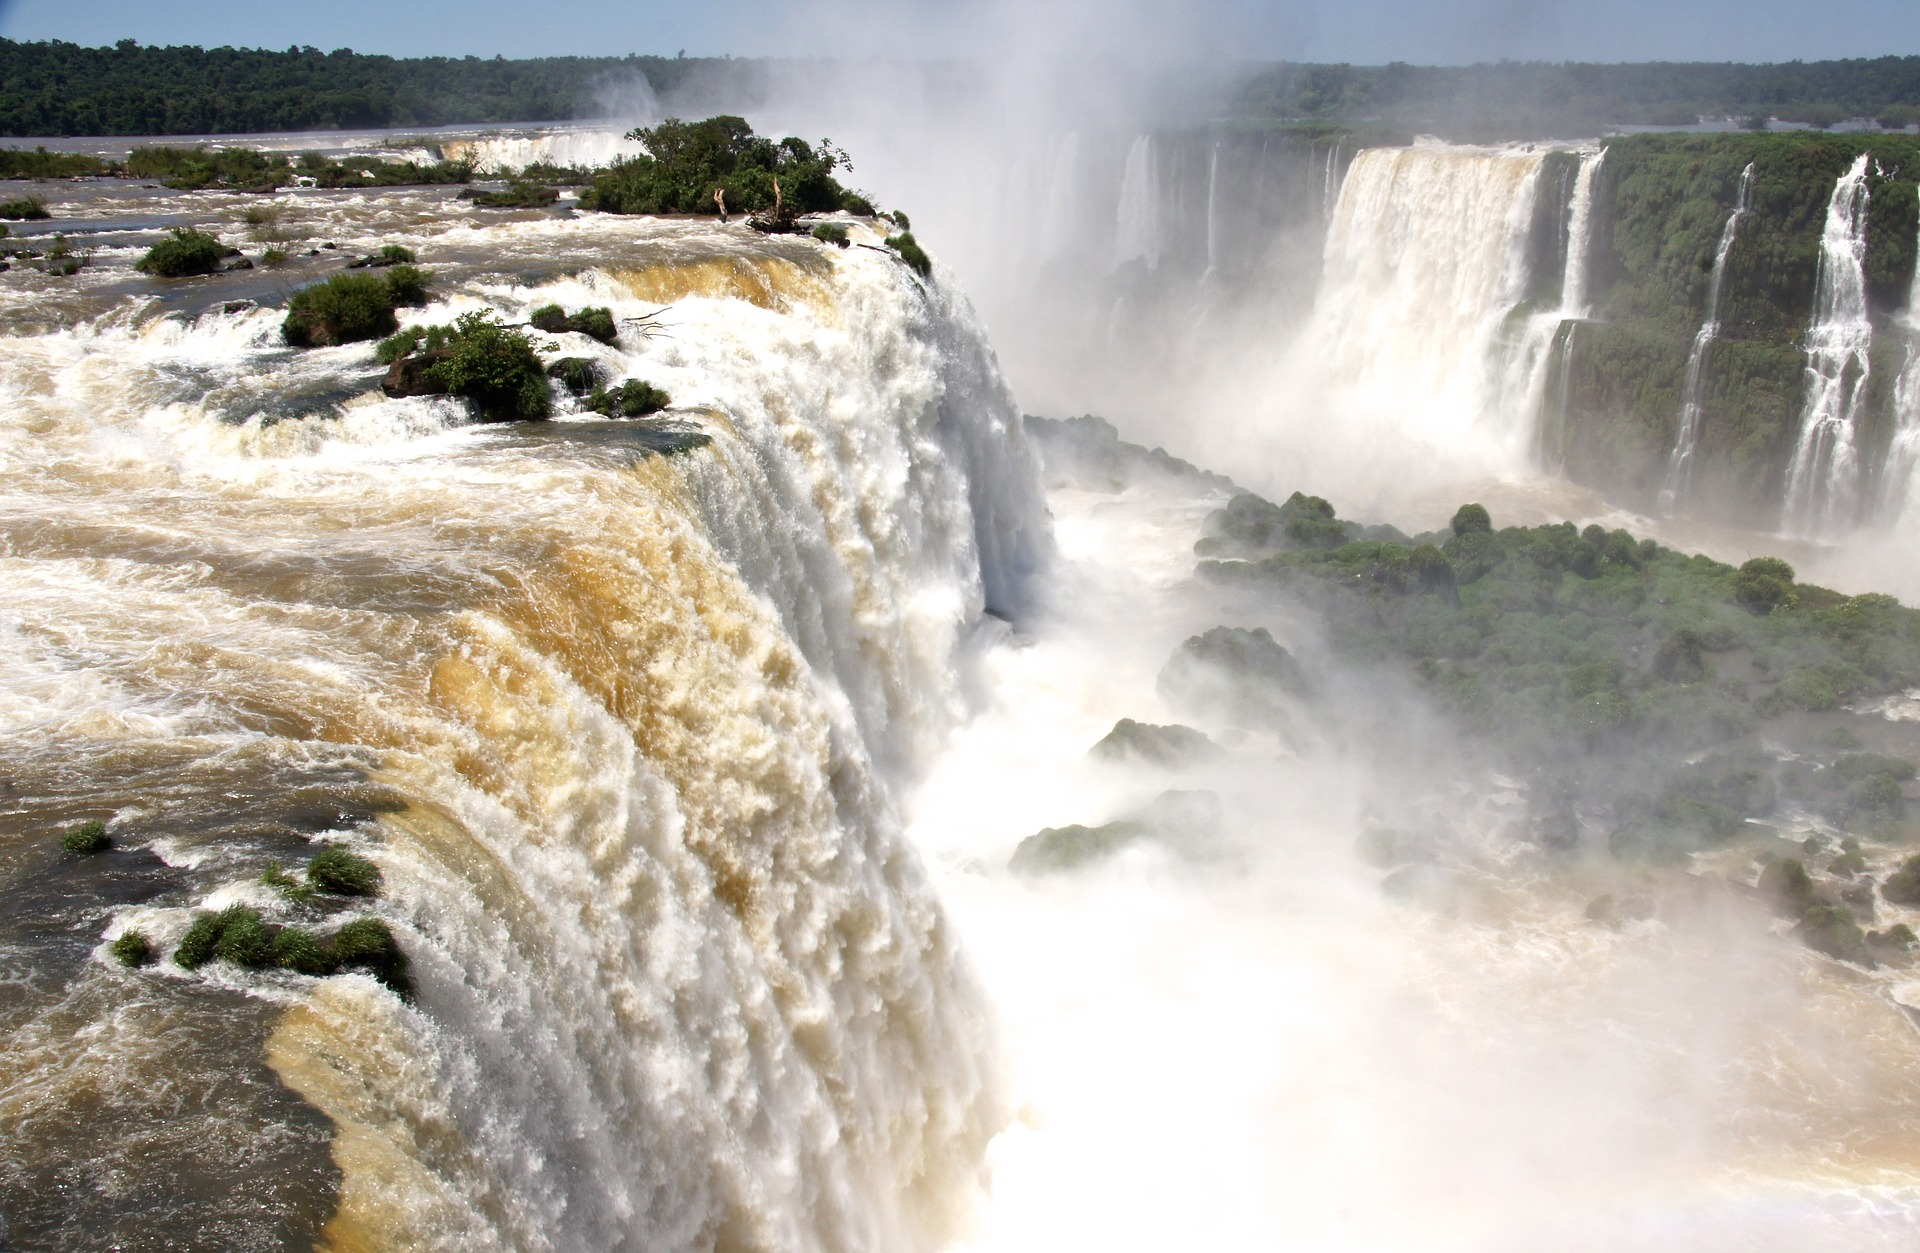 south-america-waterfall-1728321_1920.jpg